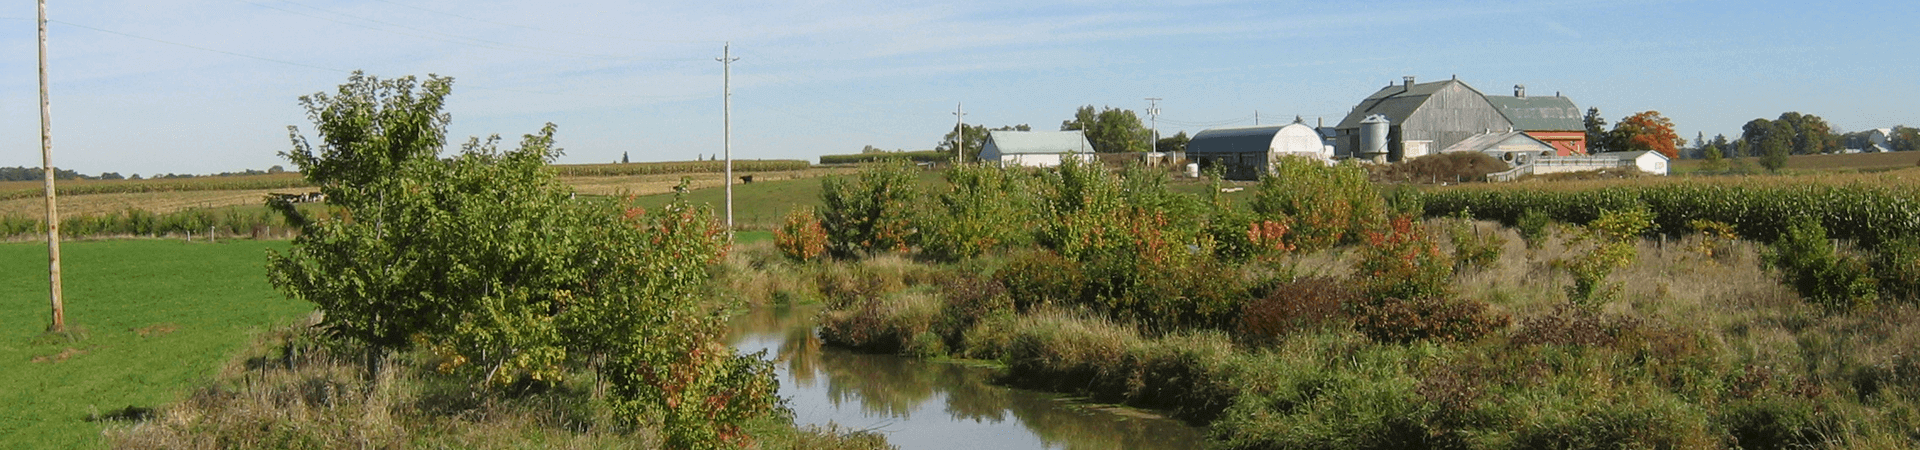 barn and stream